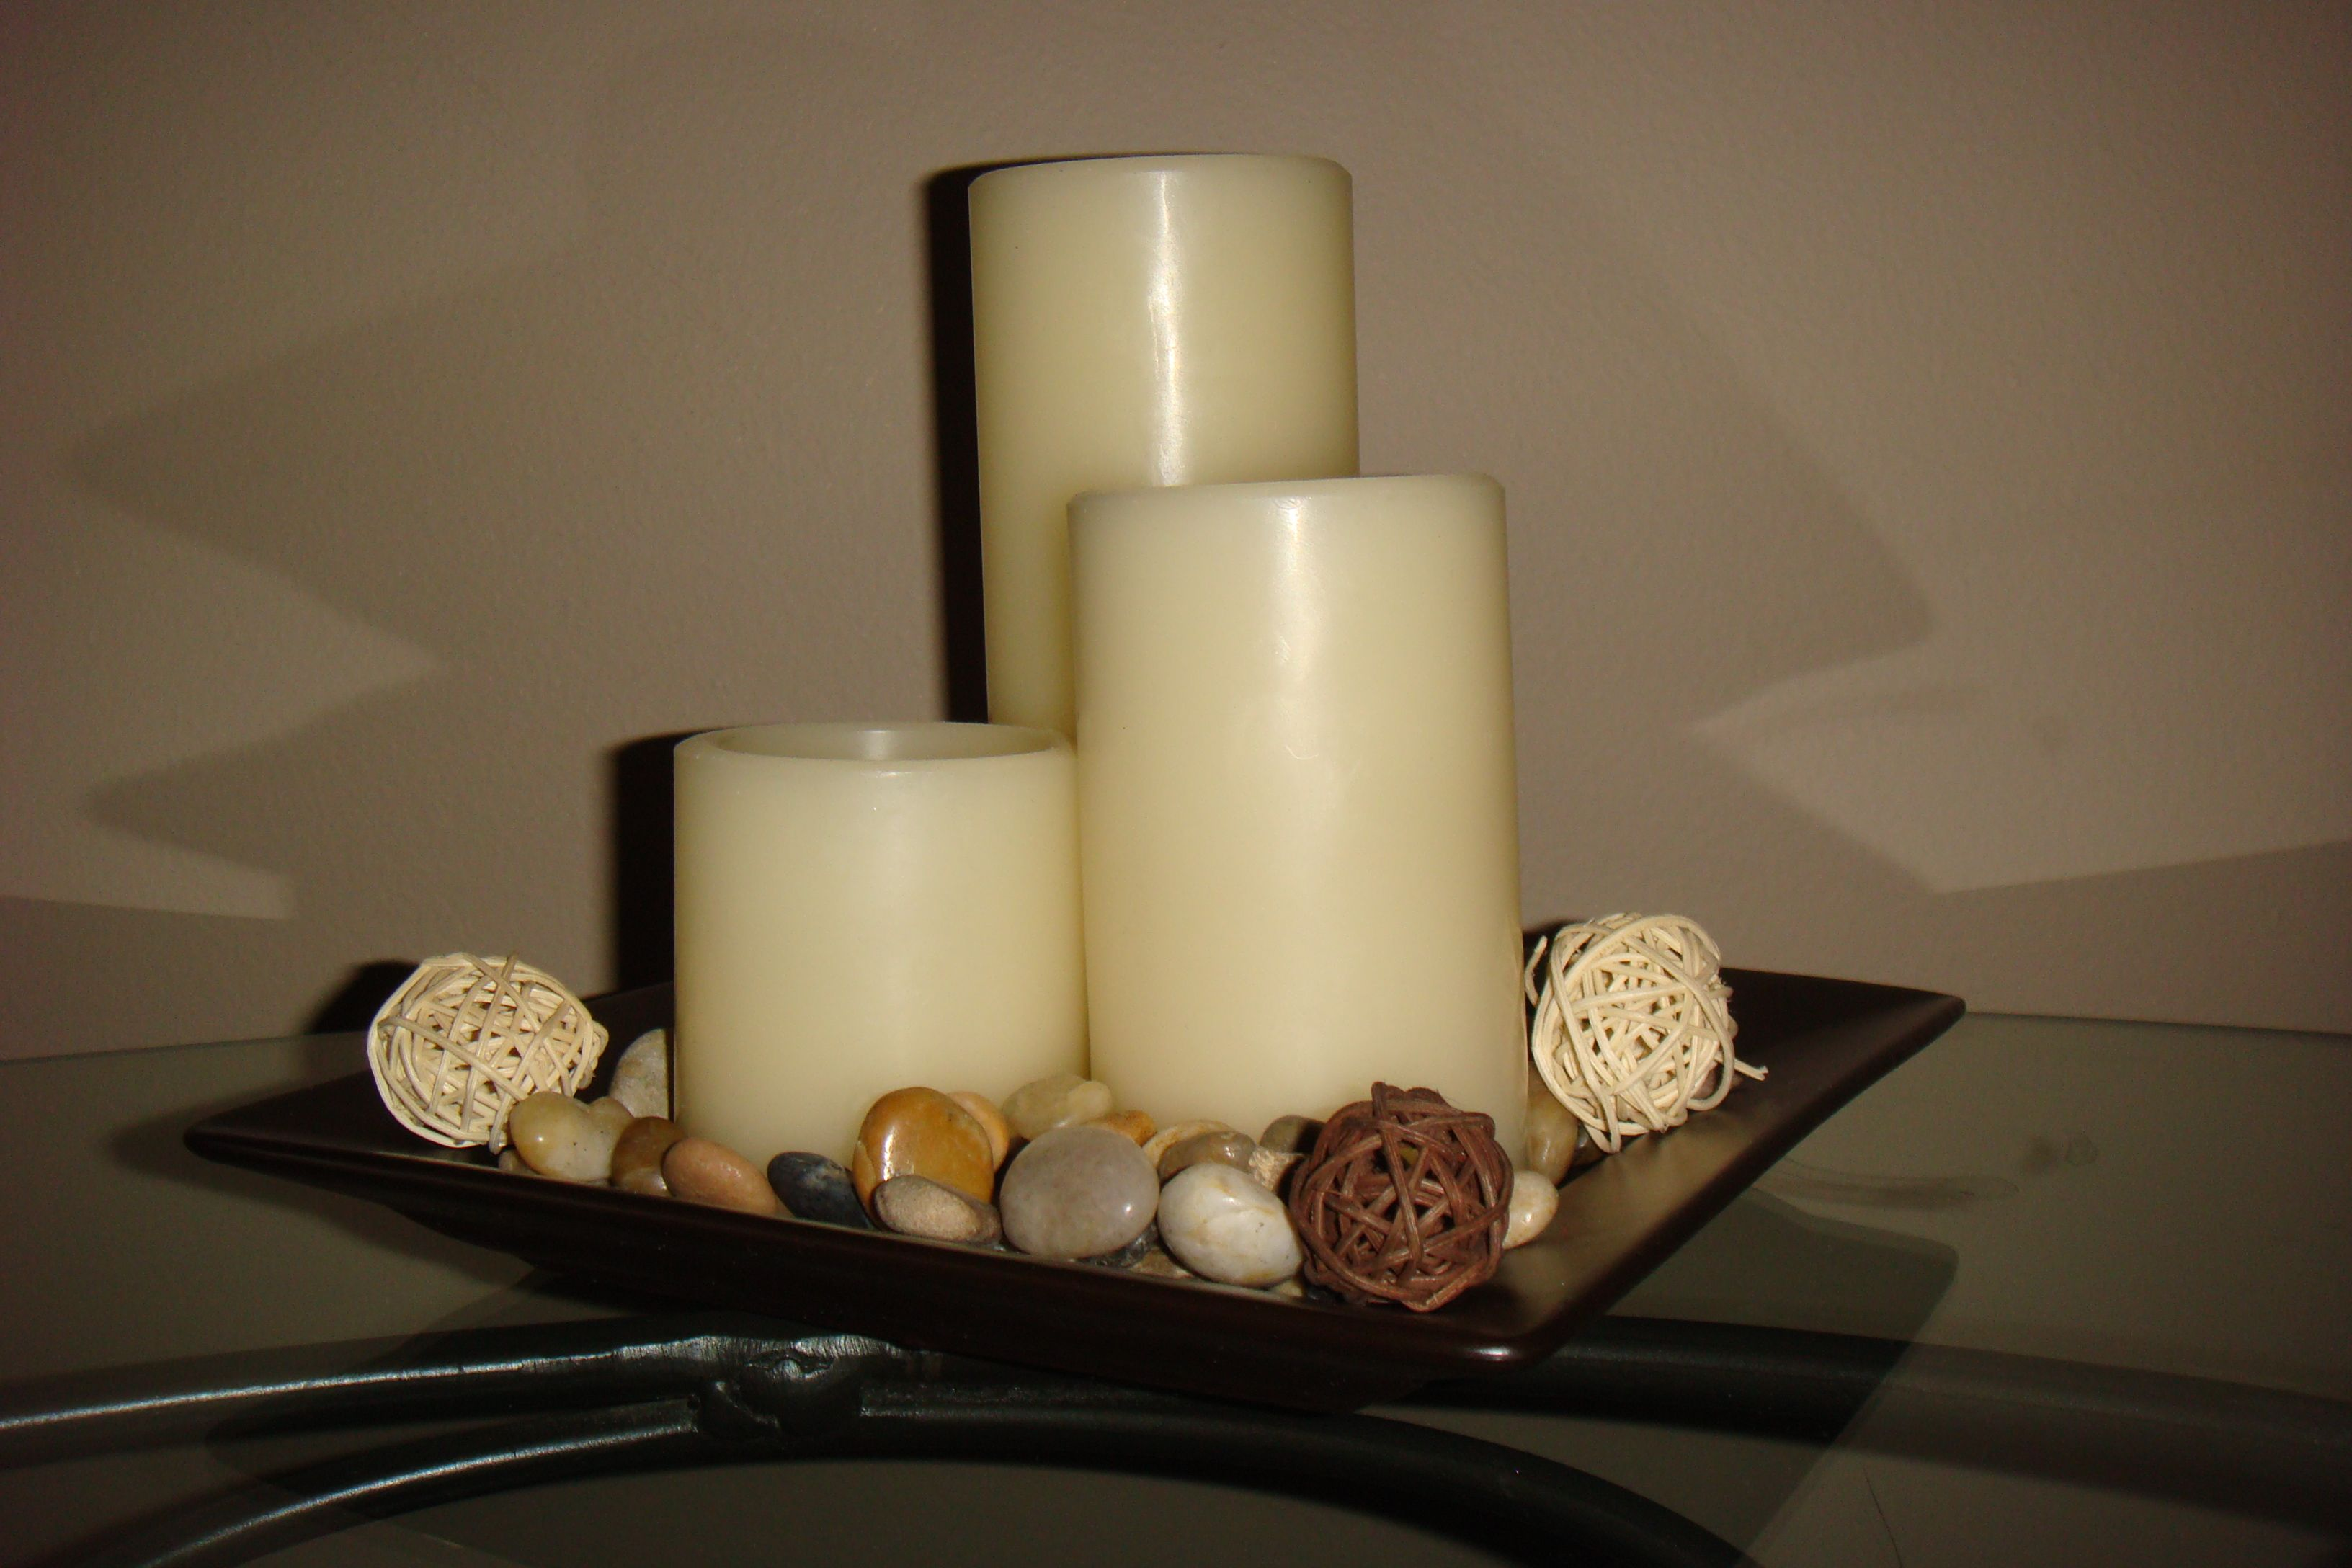 Candles in a dish